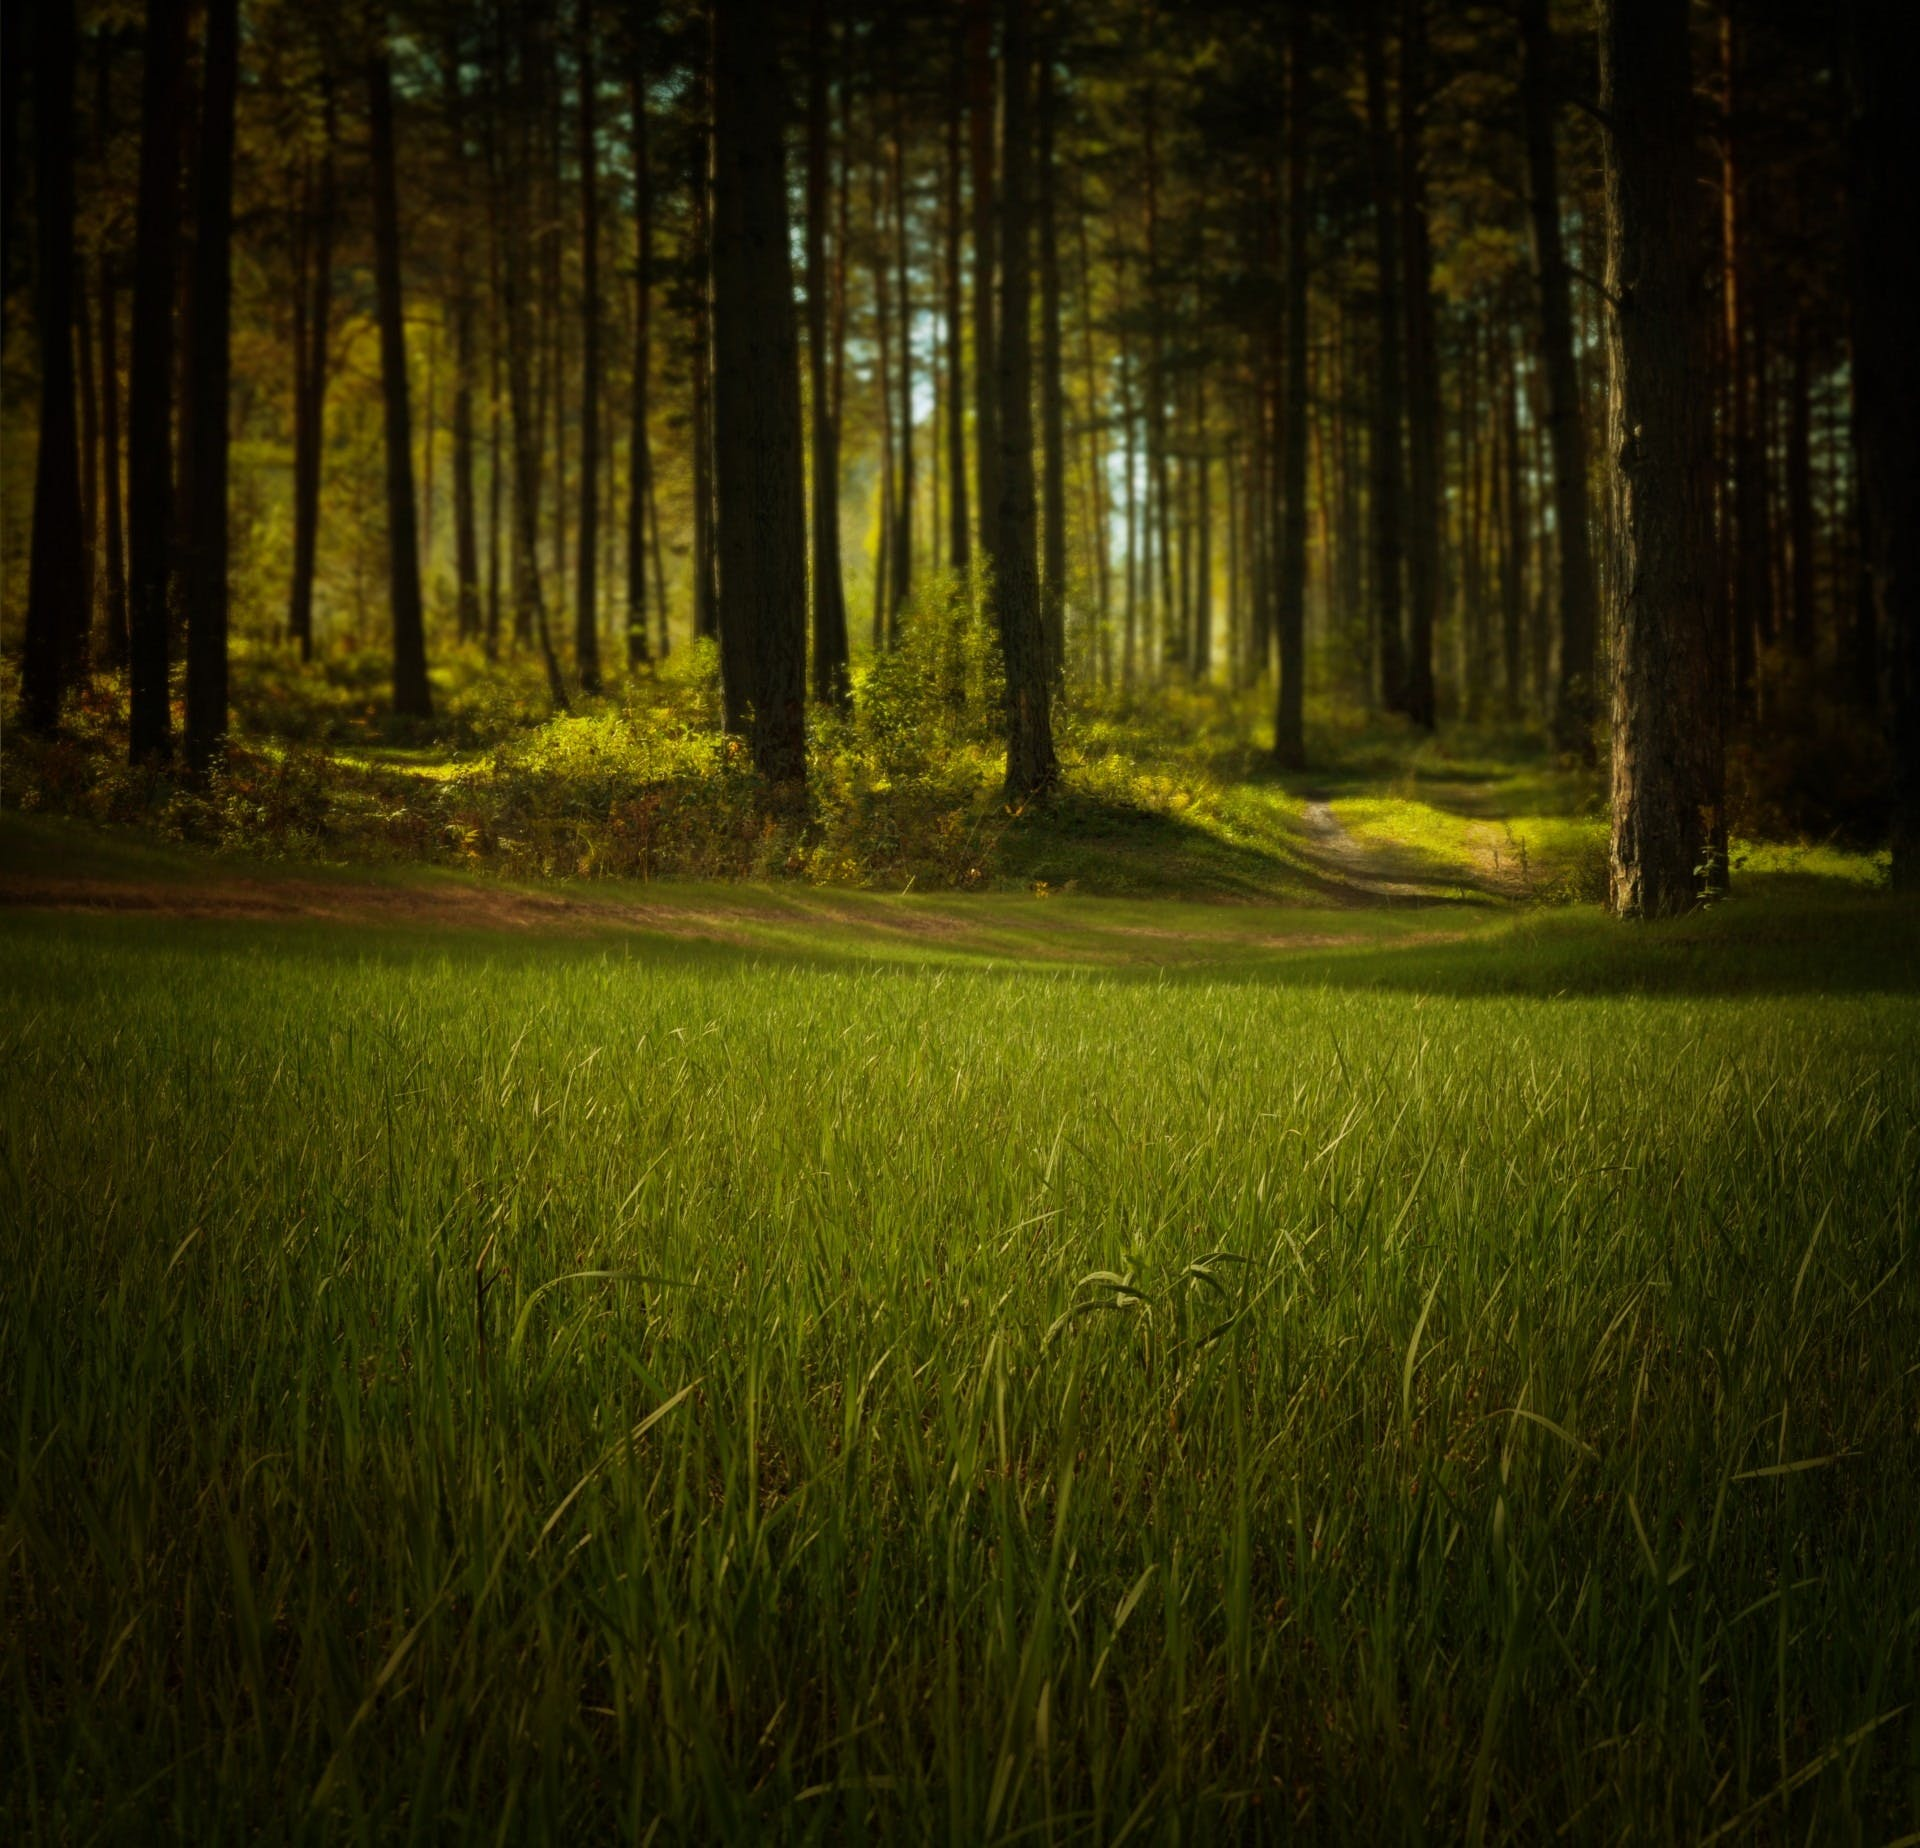 Green Grass Beside Trees Nature Photography